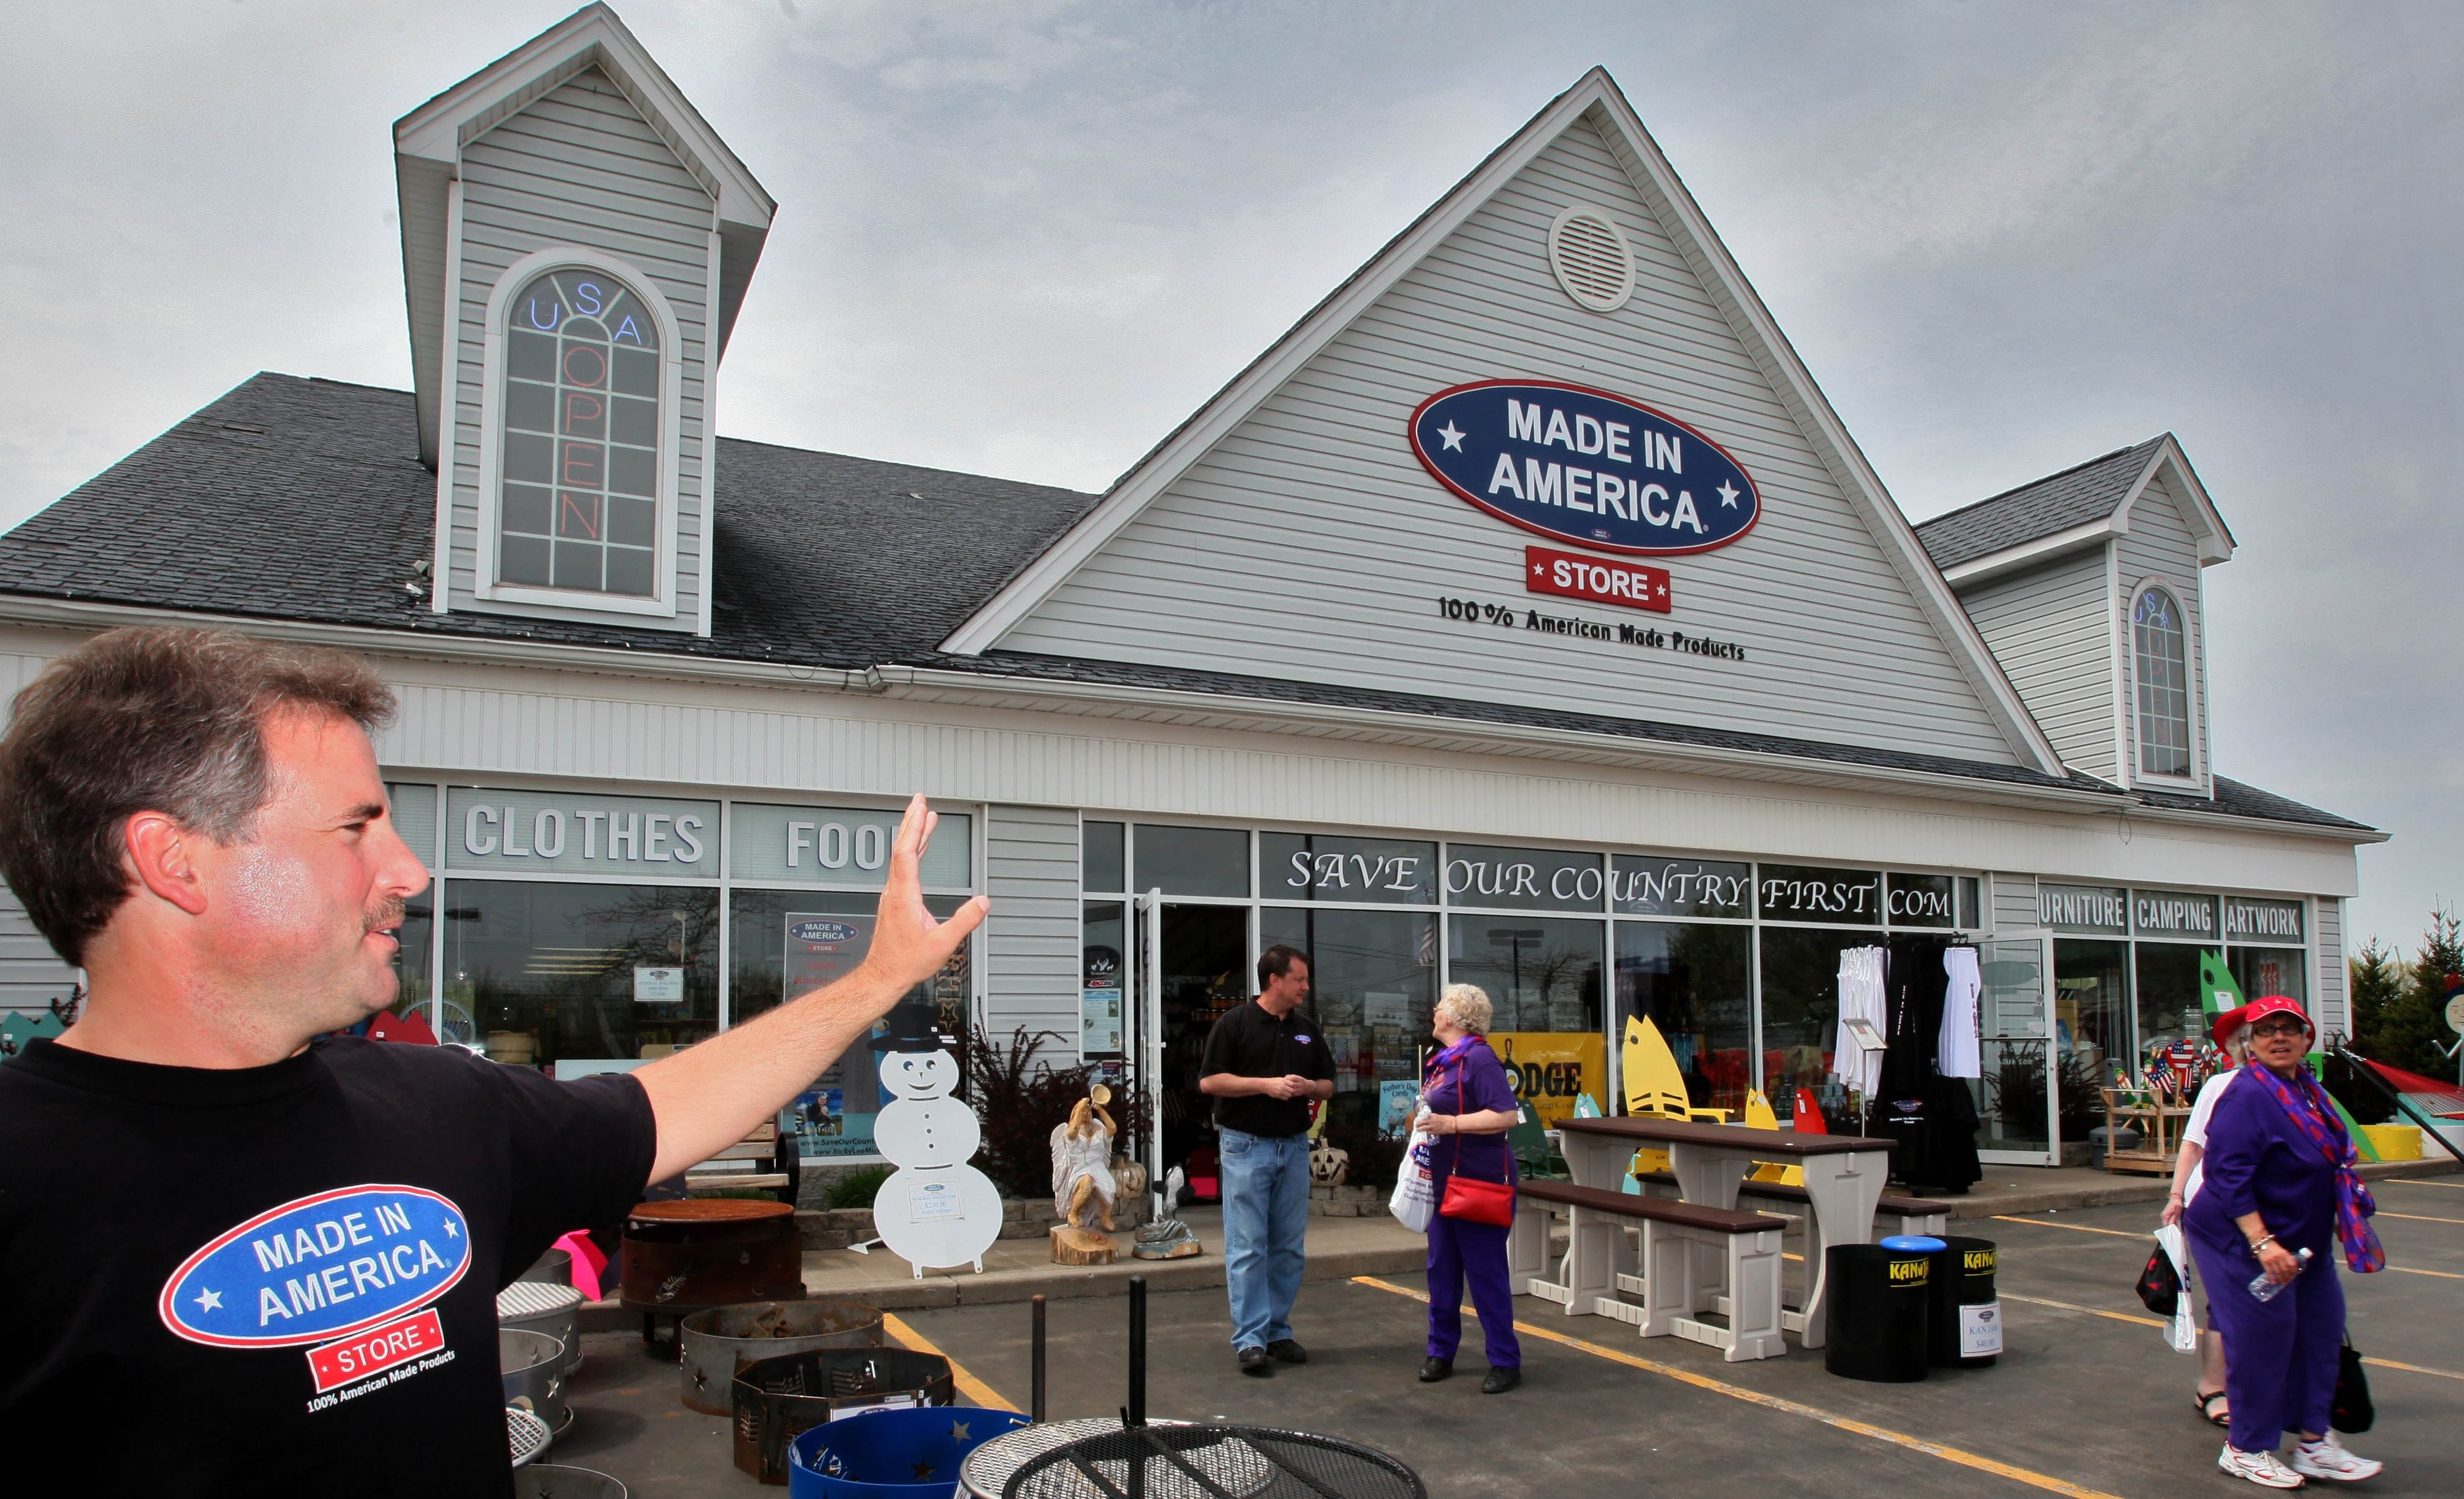 Made in America's founder and CEO Mark Andol, outside his Elma store, said he had no idea the business would become a tourist destination.